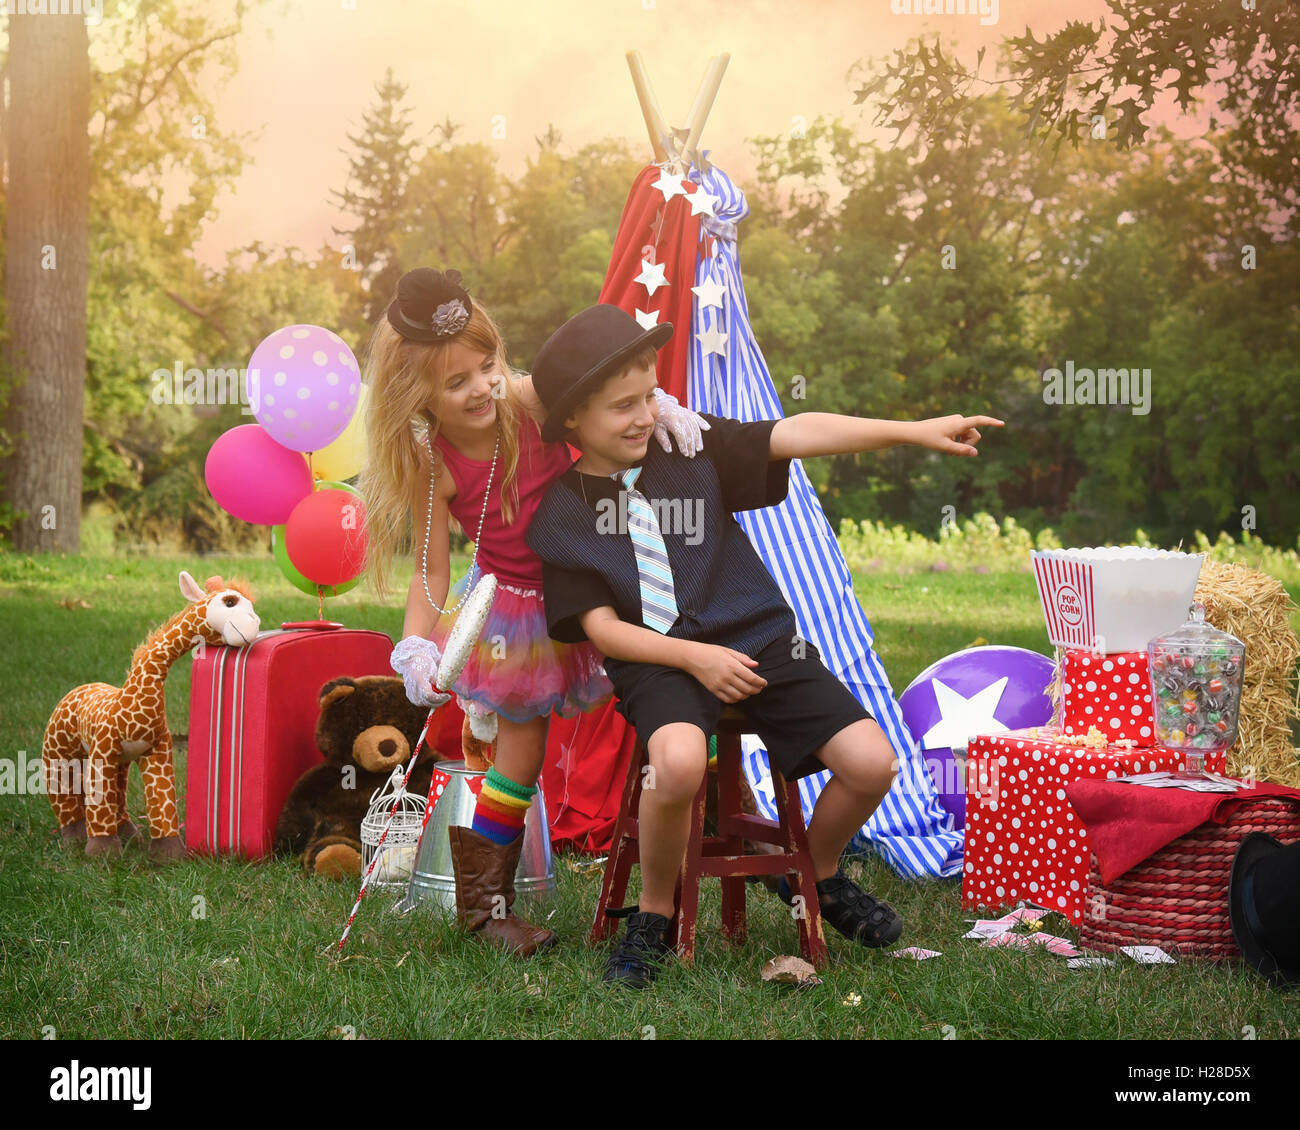 Two children are playing outside dressing up as carnival people at a circus party for an imagination or creativity - Stock Image